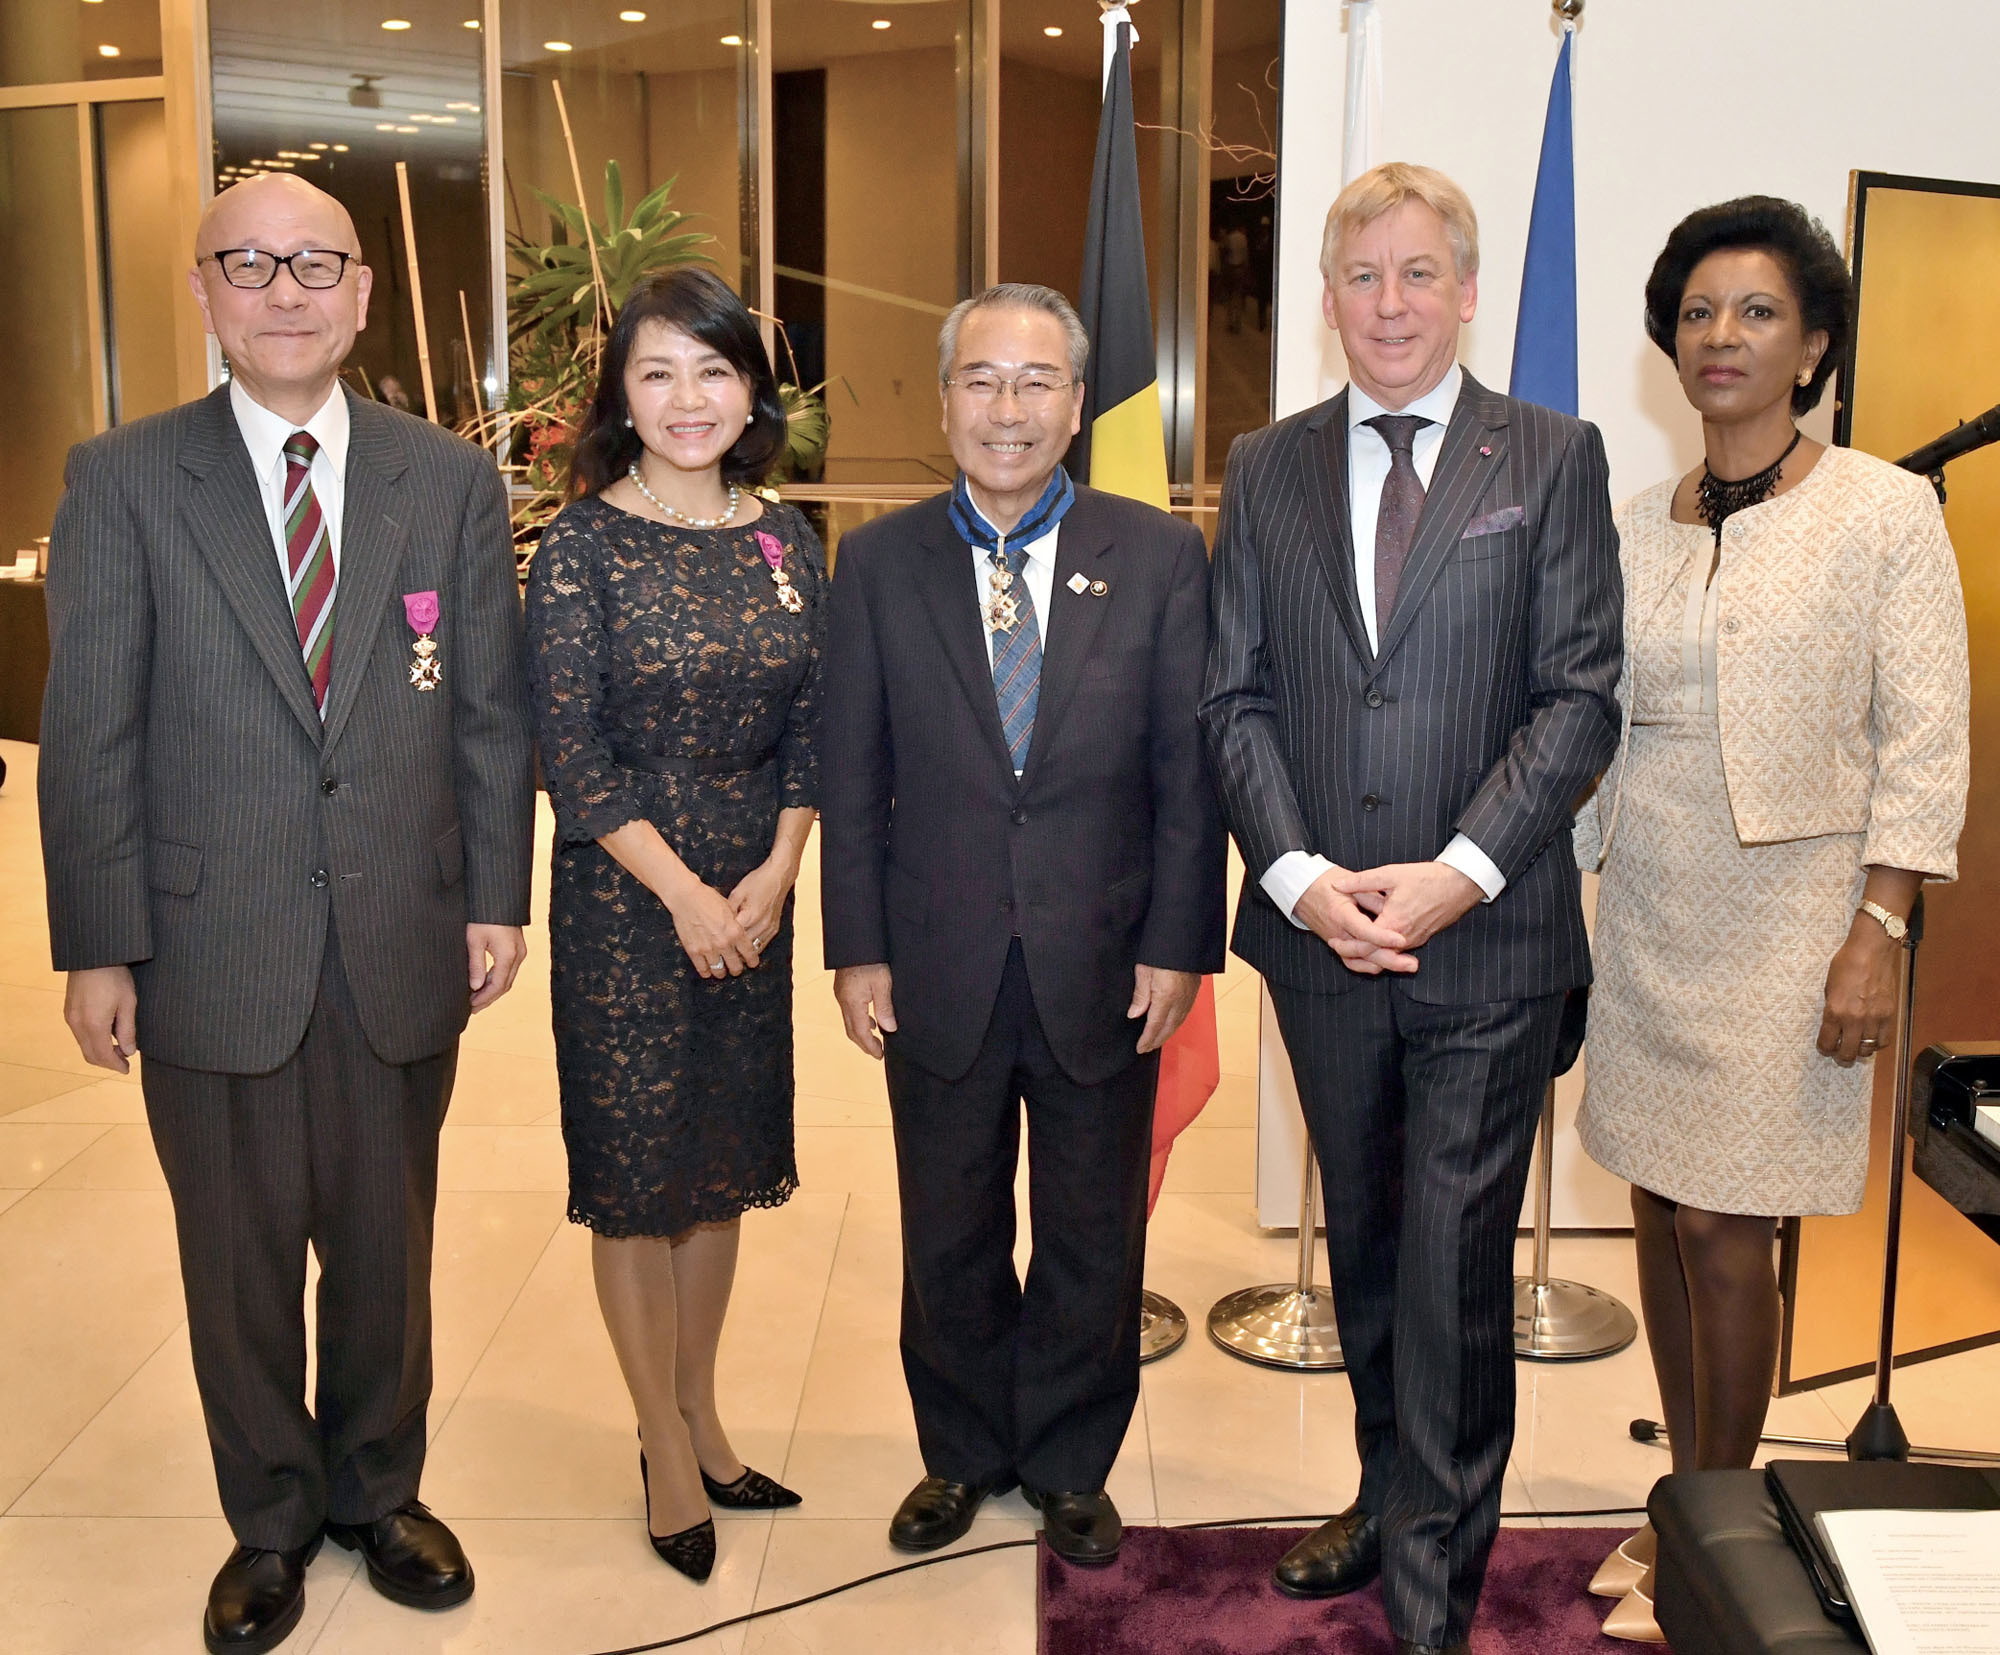 Belgian Ambassador Gunther Sleeuwagen (second from right) and his wife, Rahel (right), pose for a photo with (from left) officer of the order of Leopold recipients Jiro Okuyama and Misuzu Iwami, who are both vice-grand master of ceremonies at the Imperial Household Agency,  and commander of the order of Leopold II recipient Yuki Mayor Fumio Zemba during a reception to celebrate King's Day on Nov. 17. |  YOSHIAKI MIURA